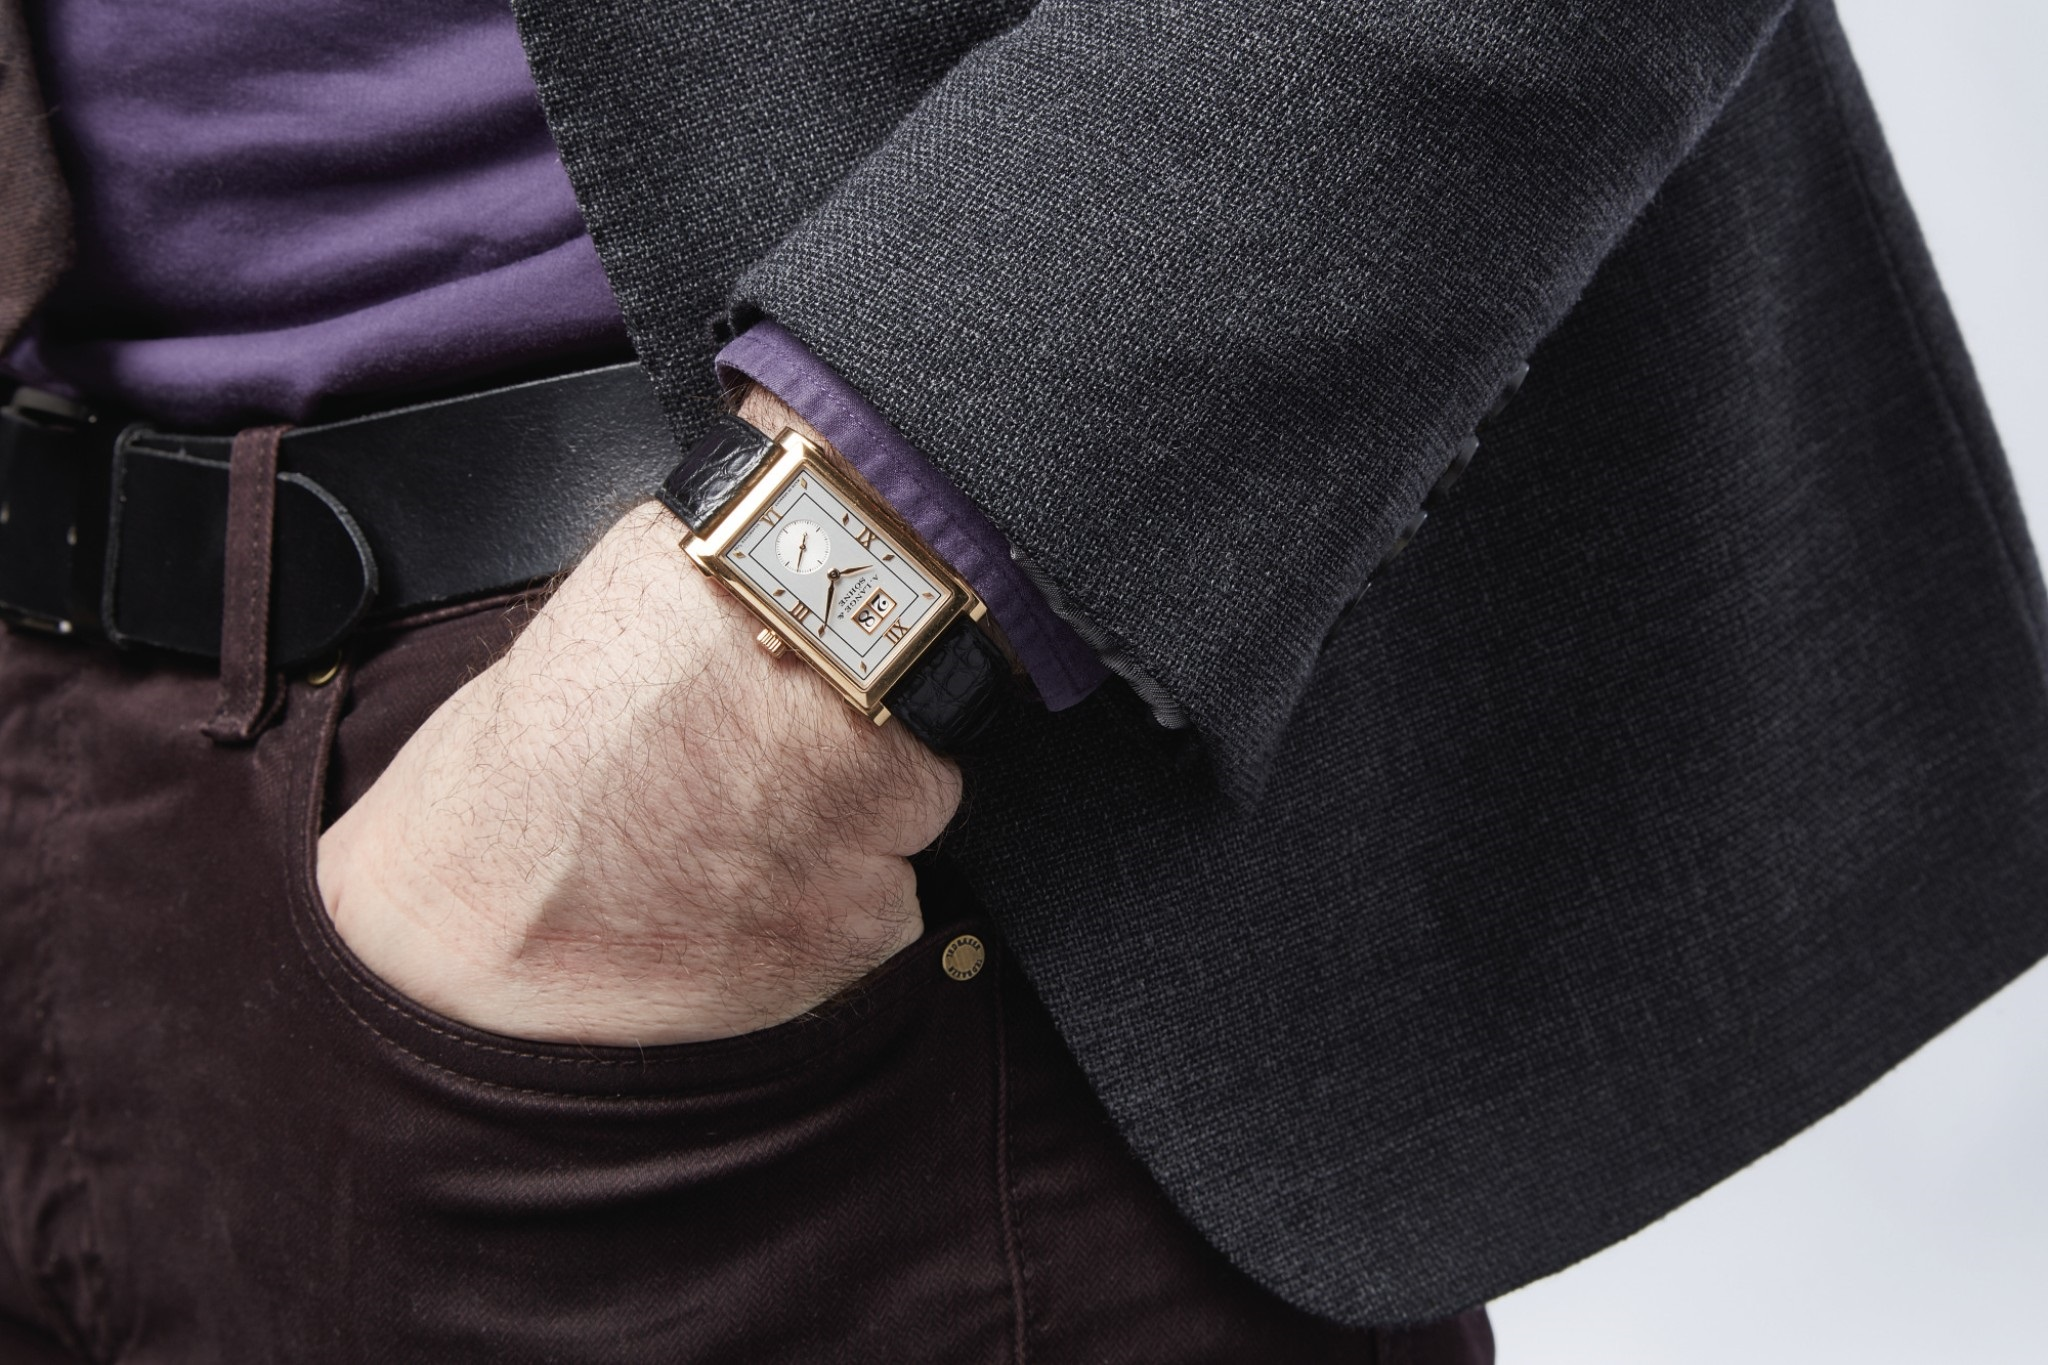 a lange söhne cabaret yellow gold 107.021 on the wrist by sotheby's